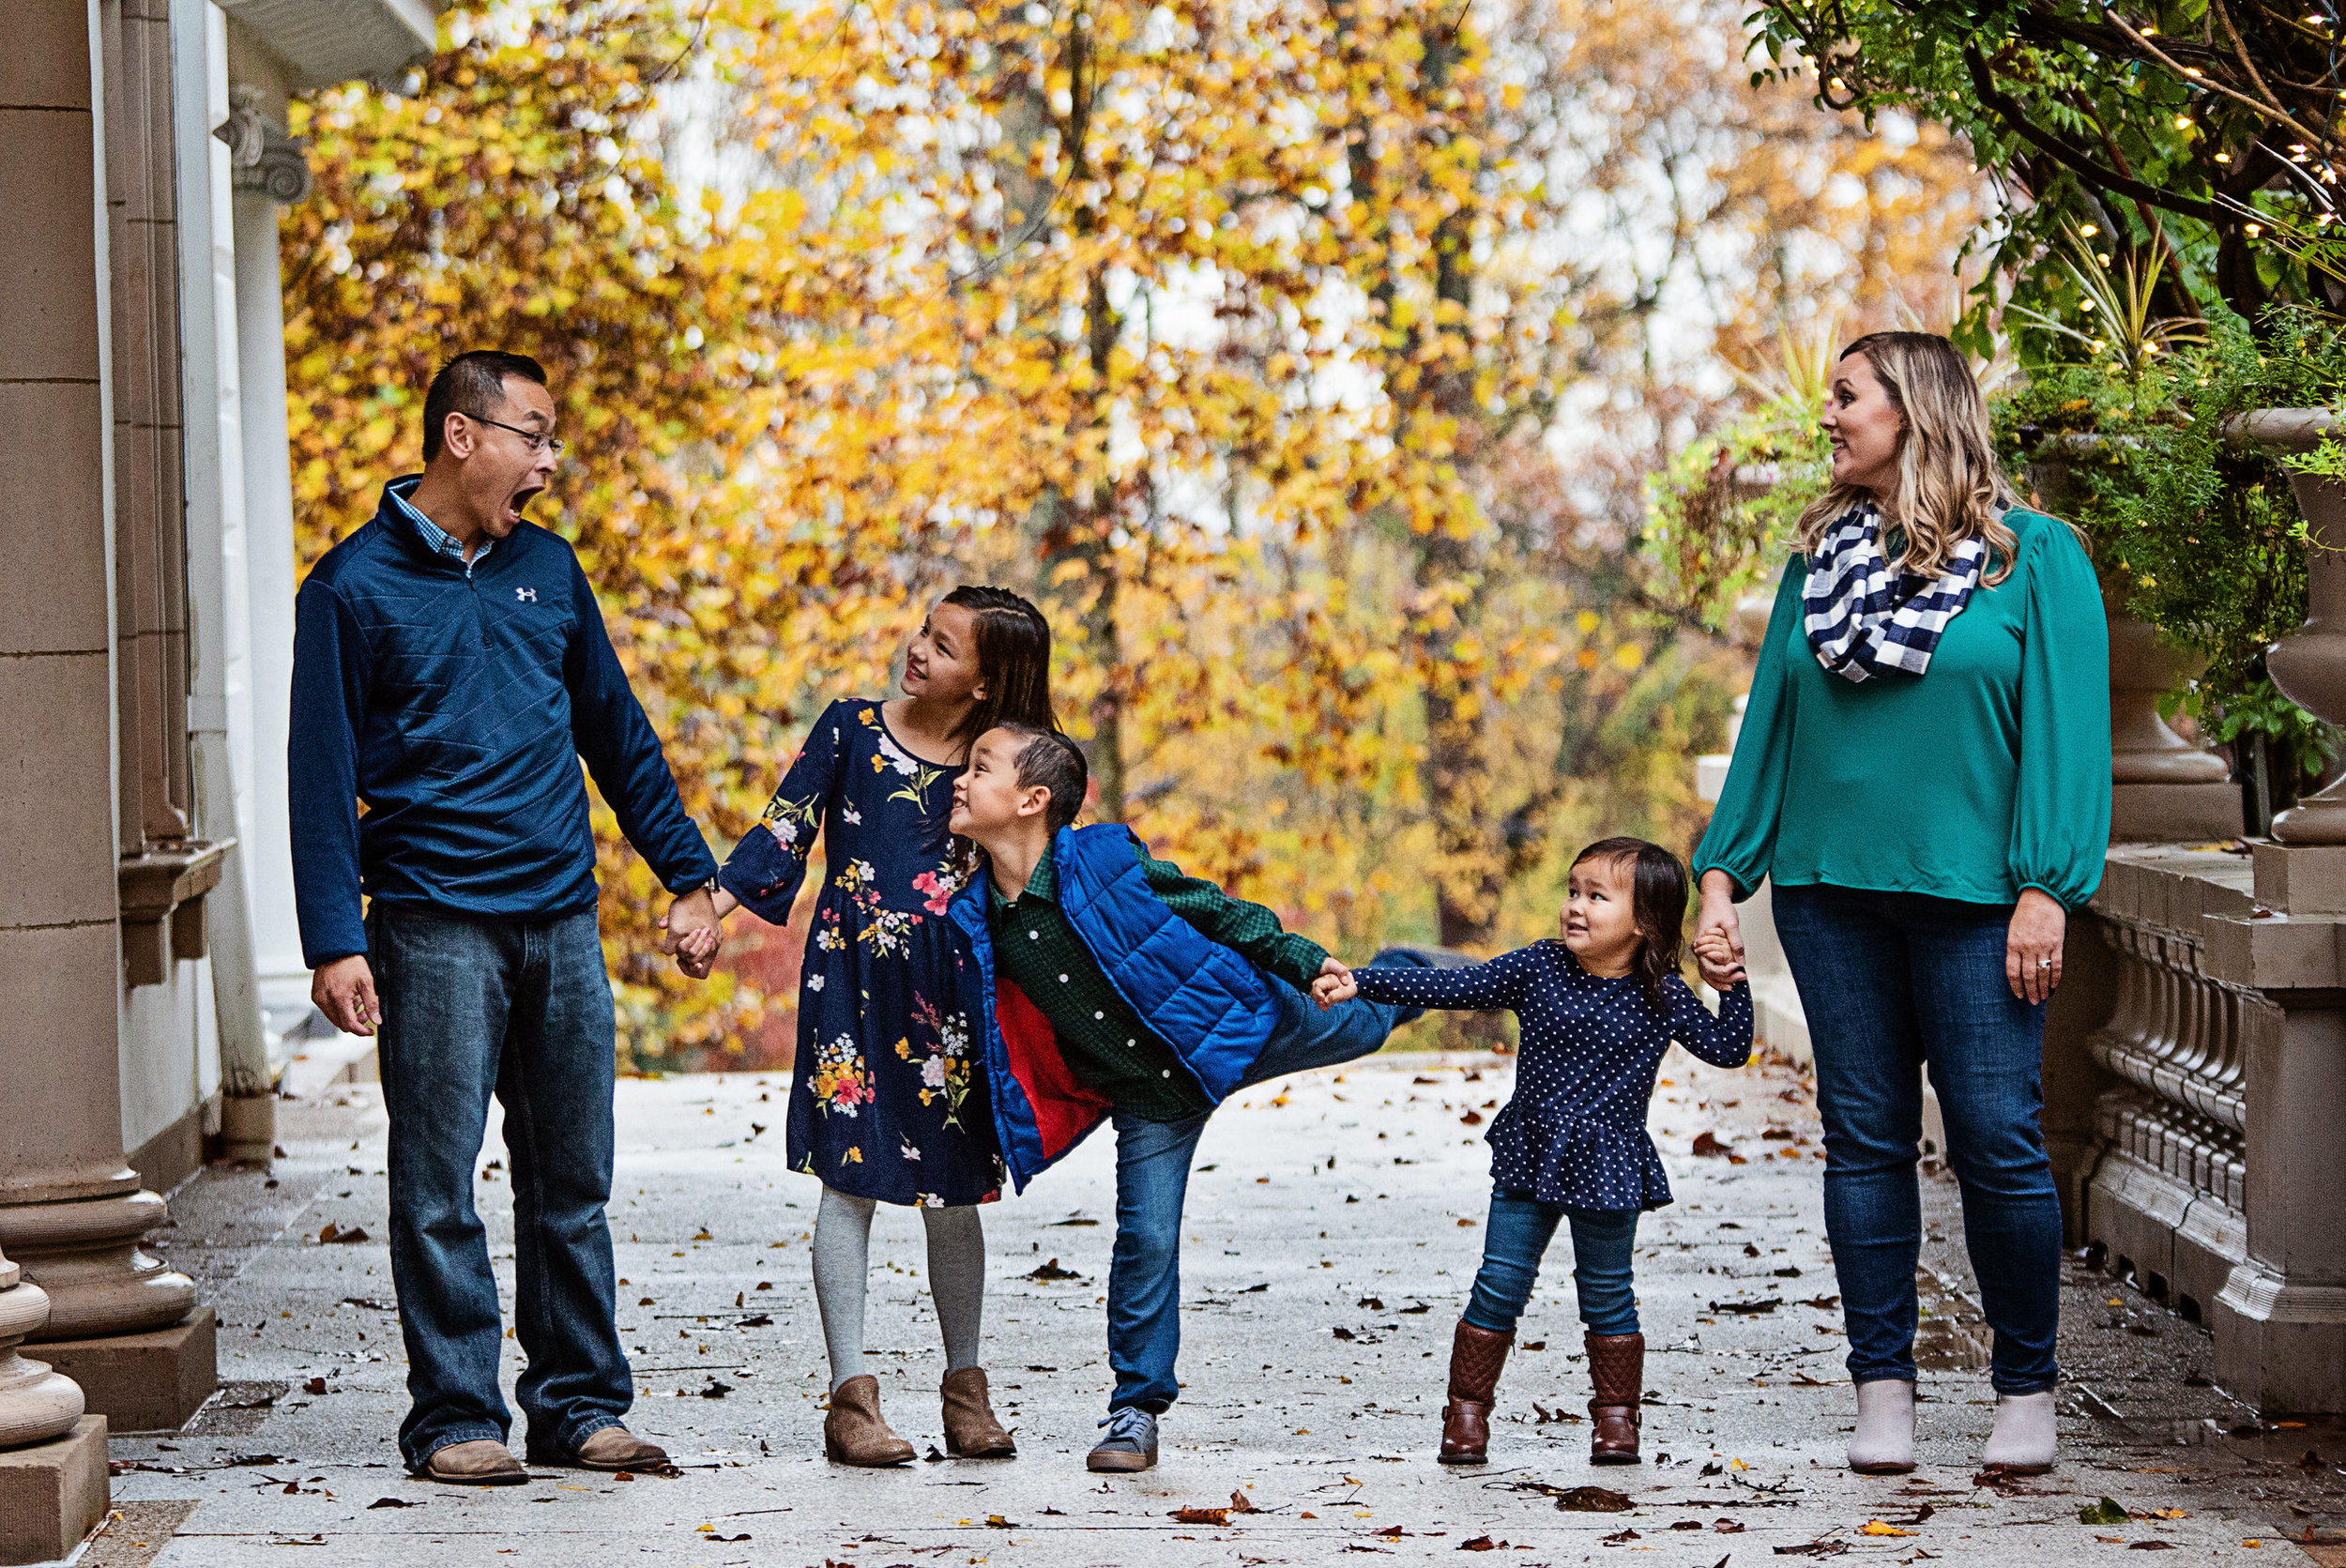 MarylandFamilyPhotography-LienFamily2018-17.jpg